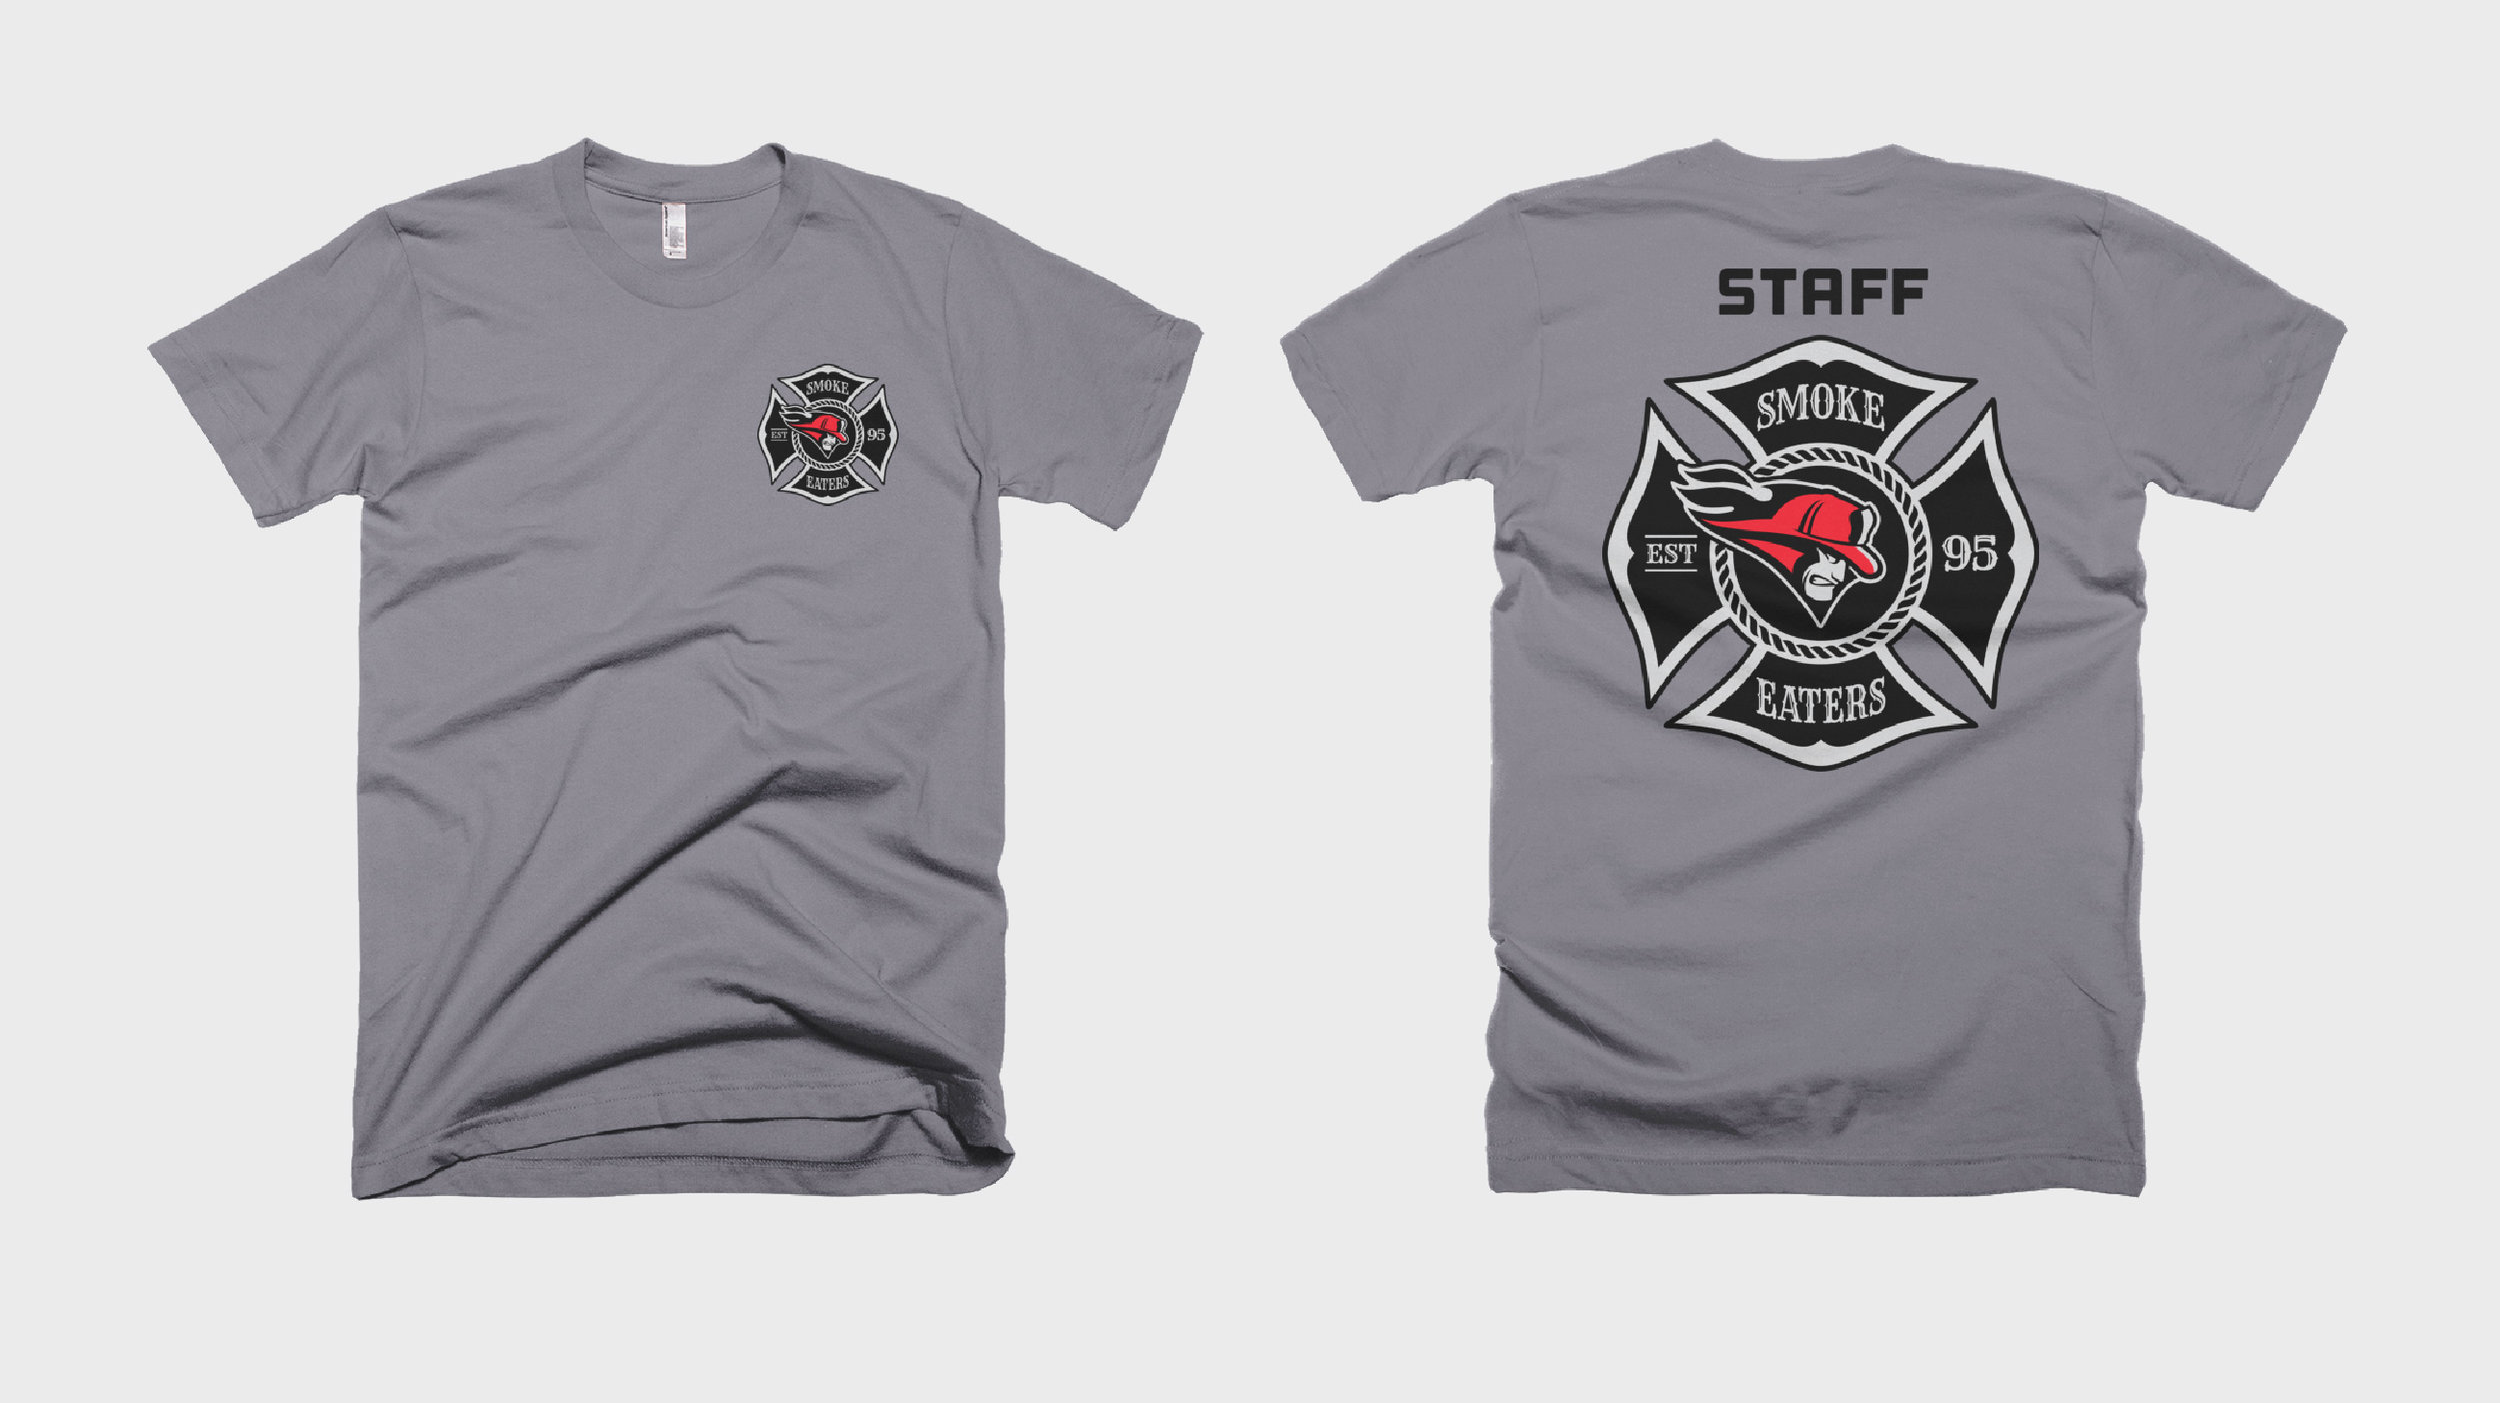 Smoke Eaters T-Shirt_STAFF.jpg